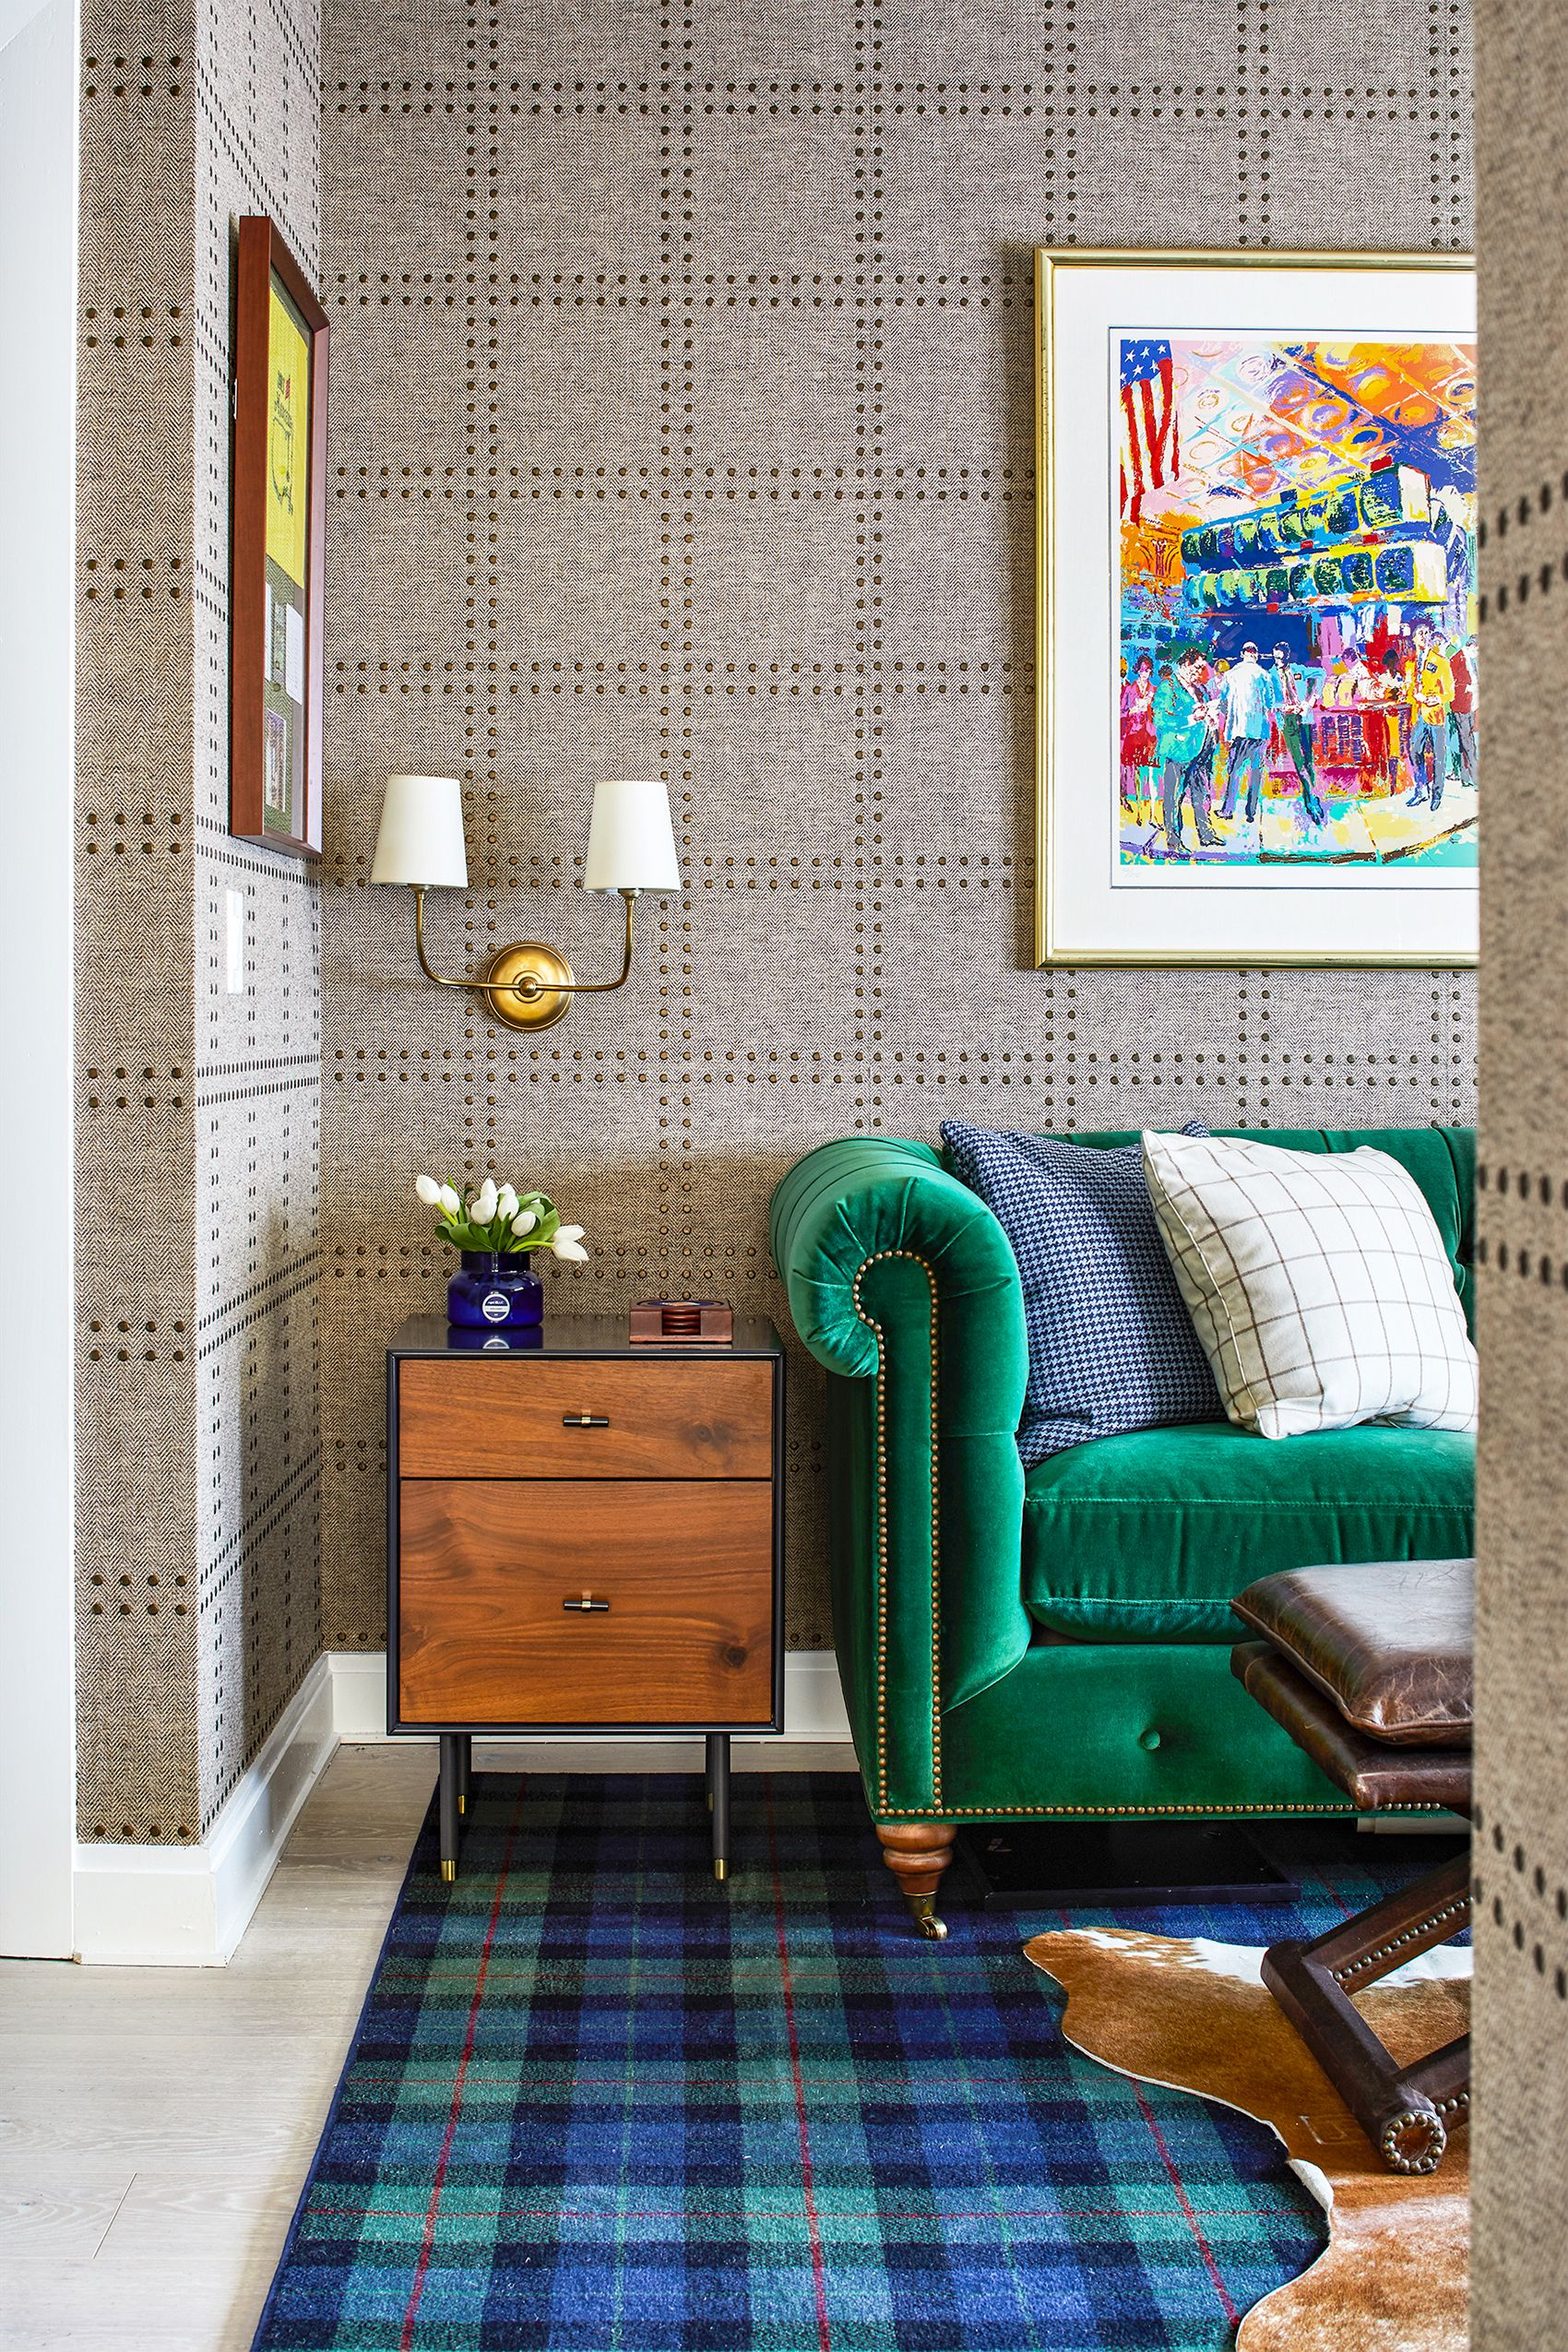 17 Wall Texture Design Ideas From Fabric Walls To Textured Paint Tricks